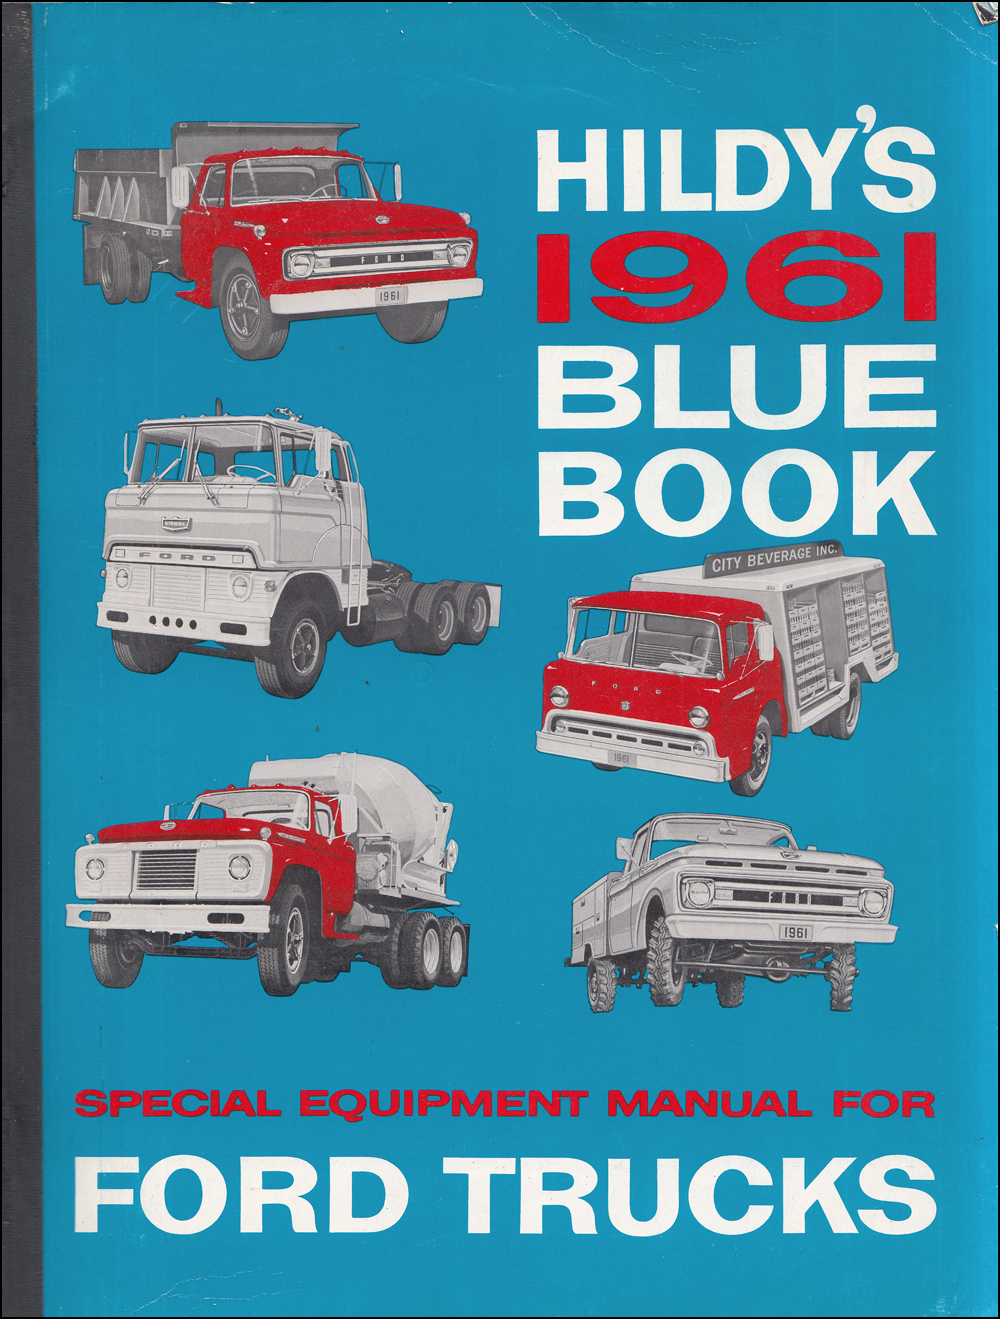 1961 Hildy's Blue Book Ford Truck Special Equipment Dealer Album